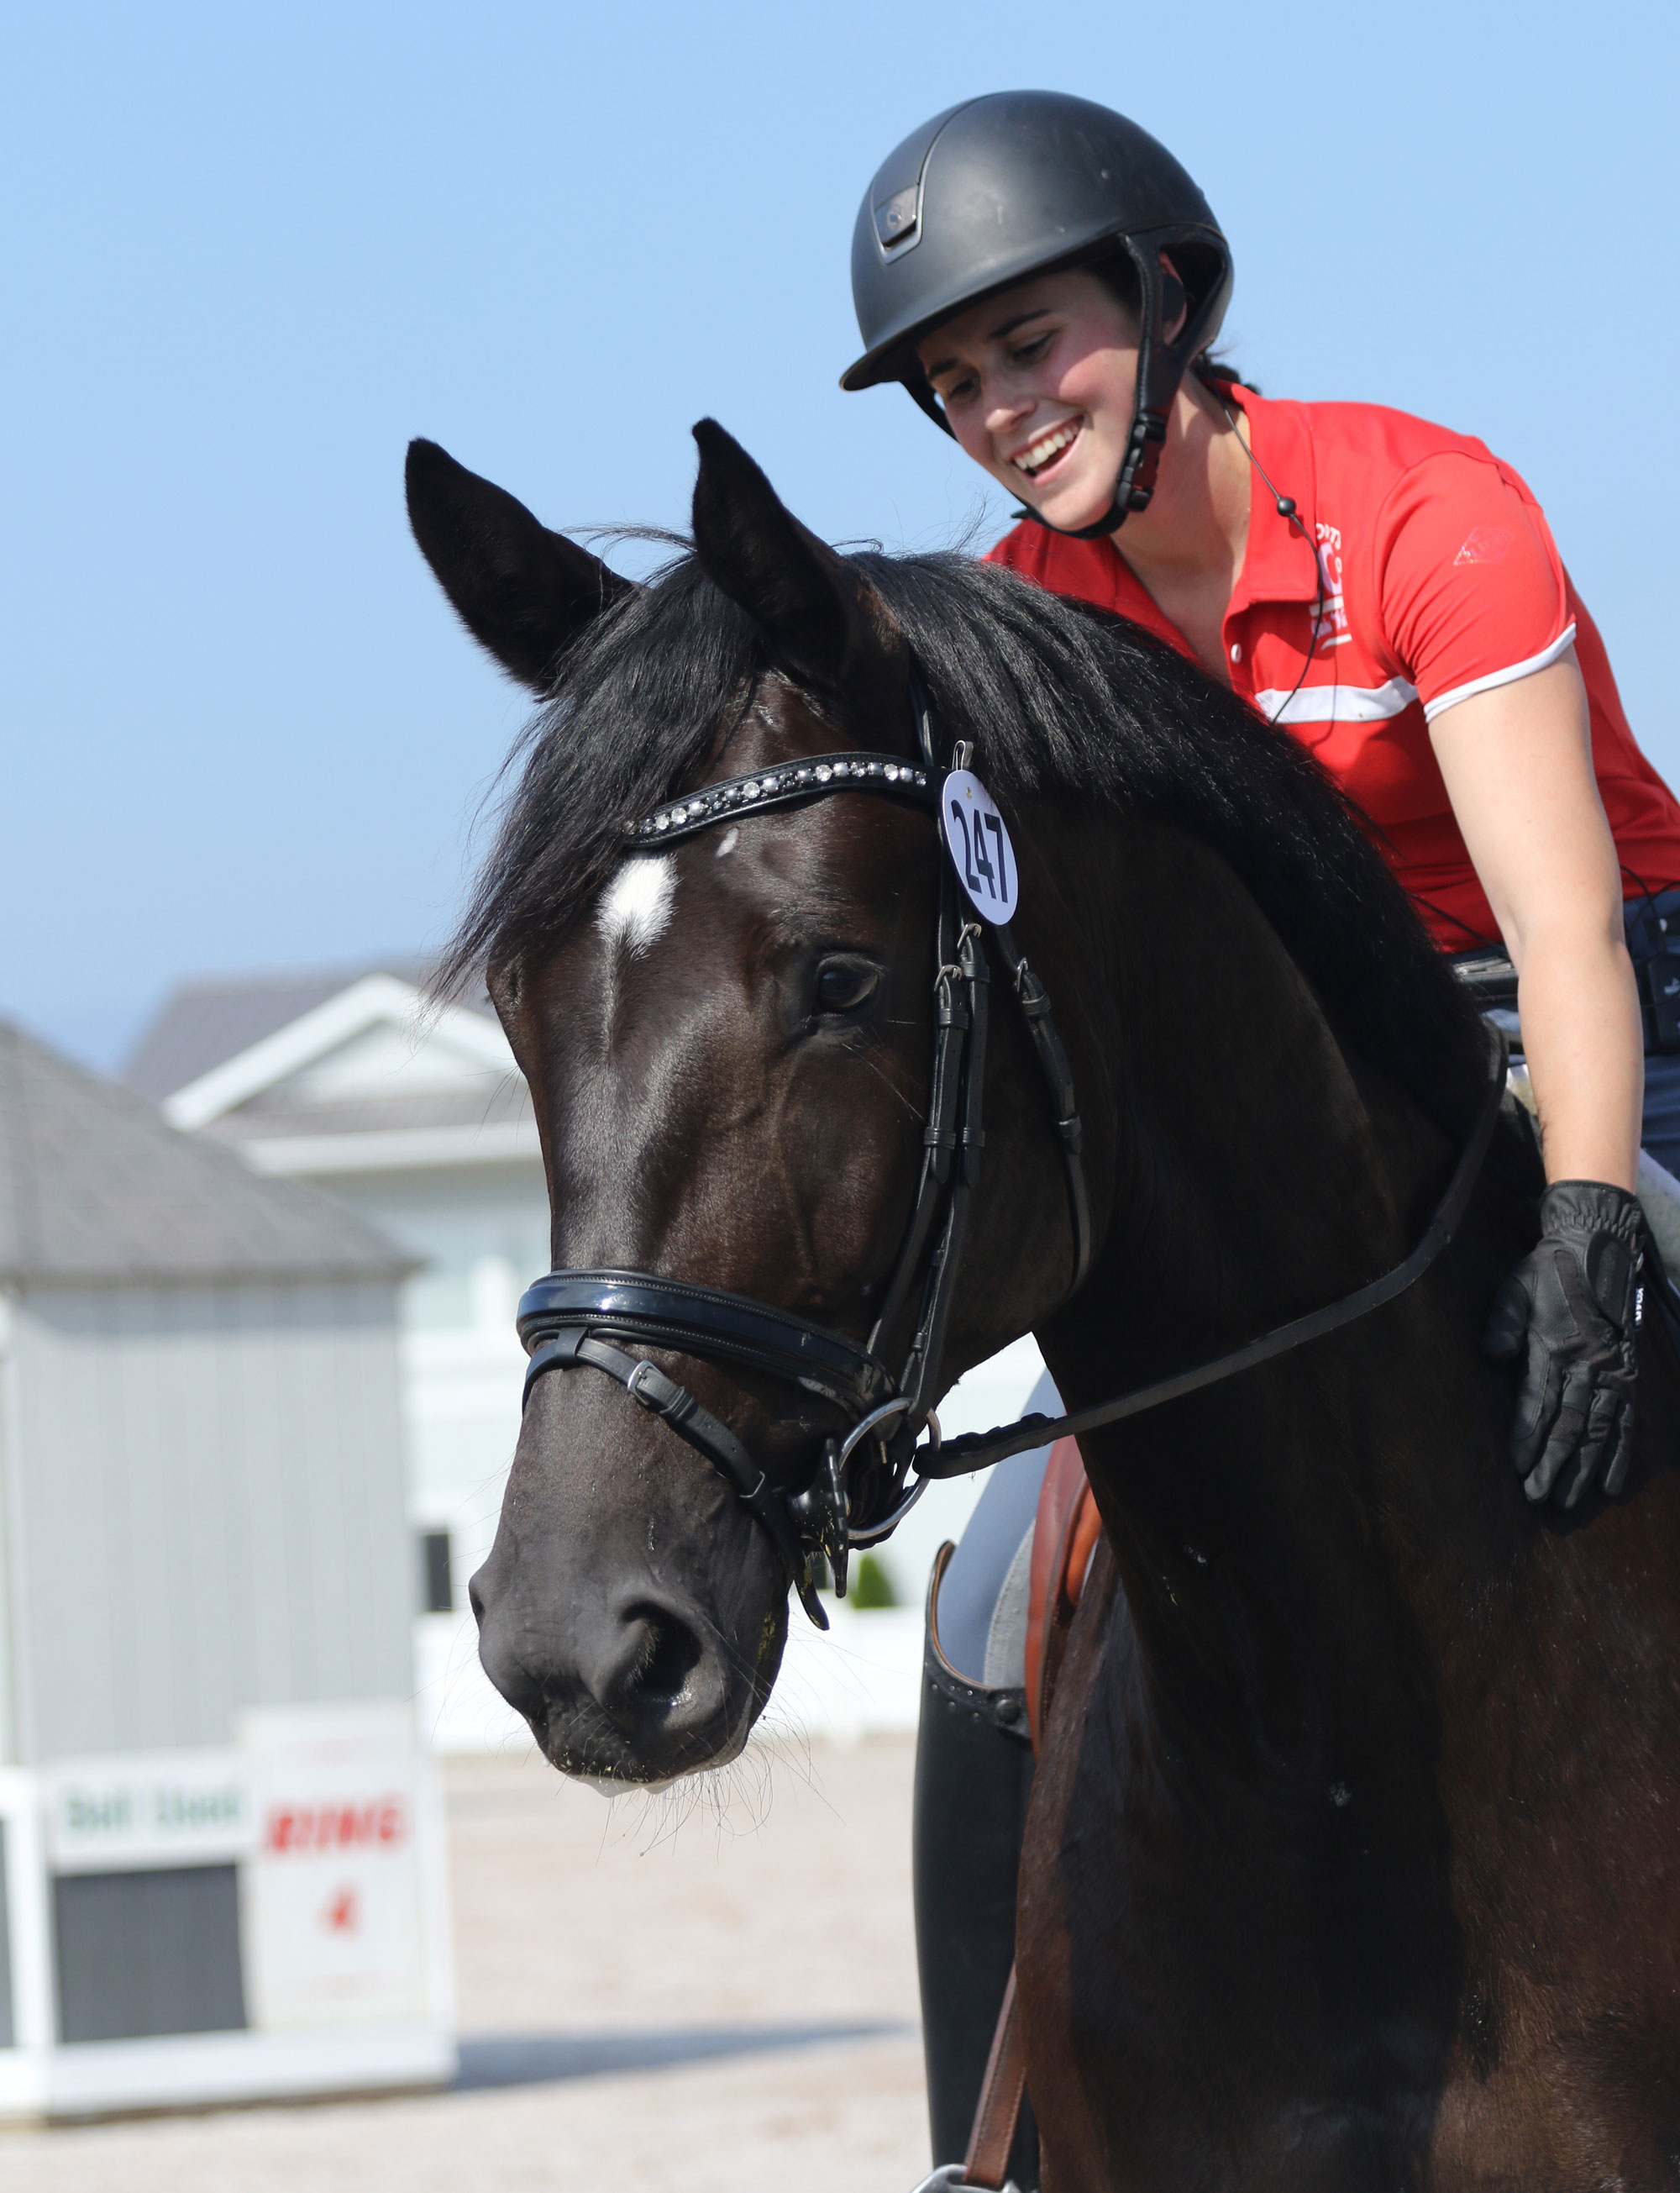 Why You Need to Wear a Helmet While Riding a Horse